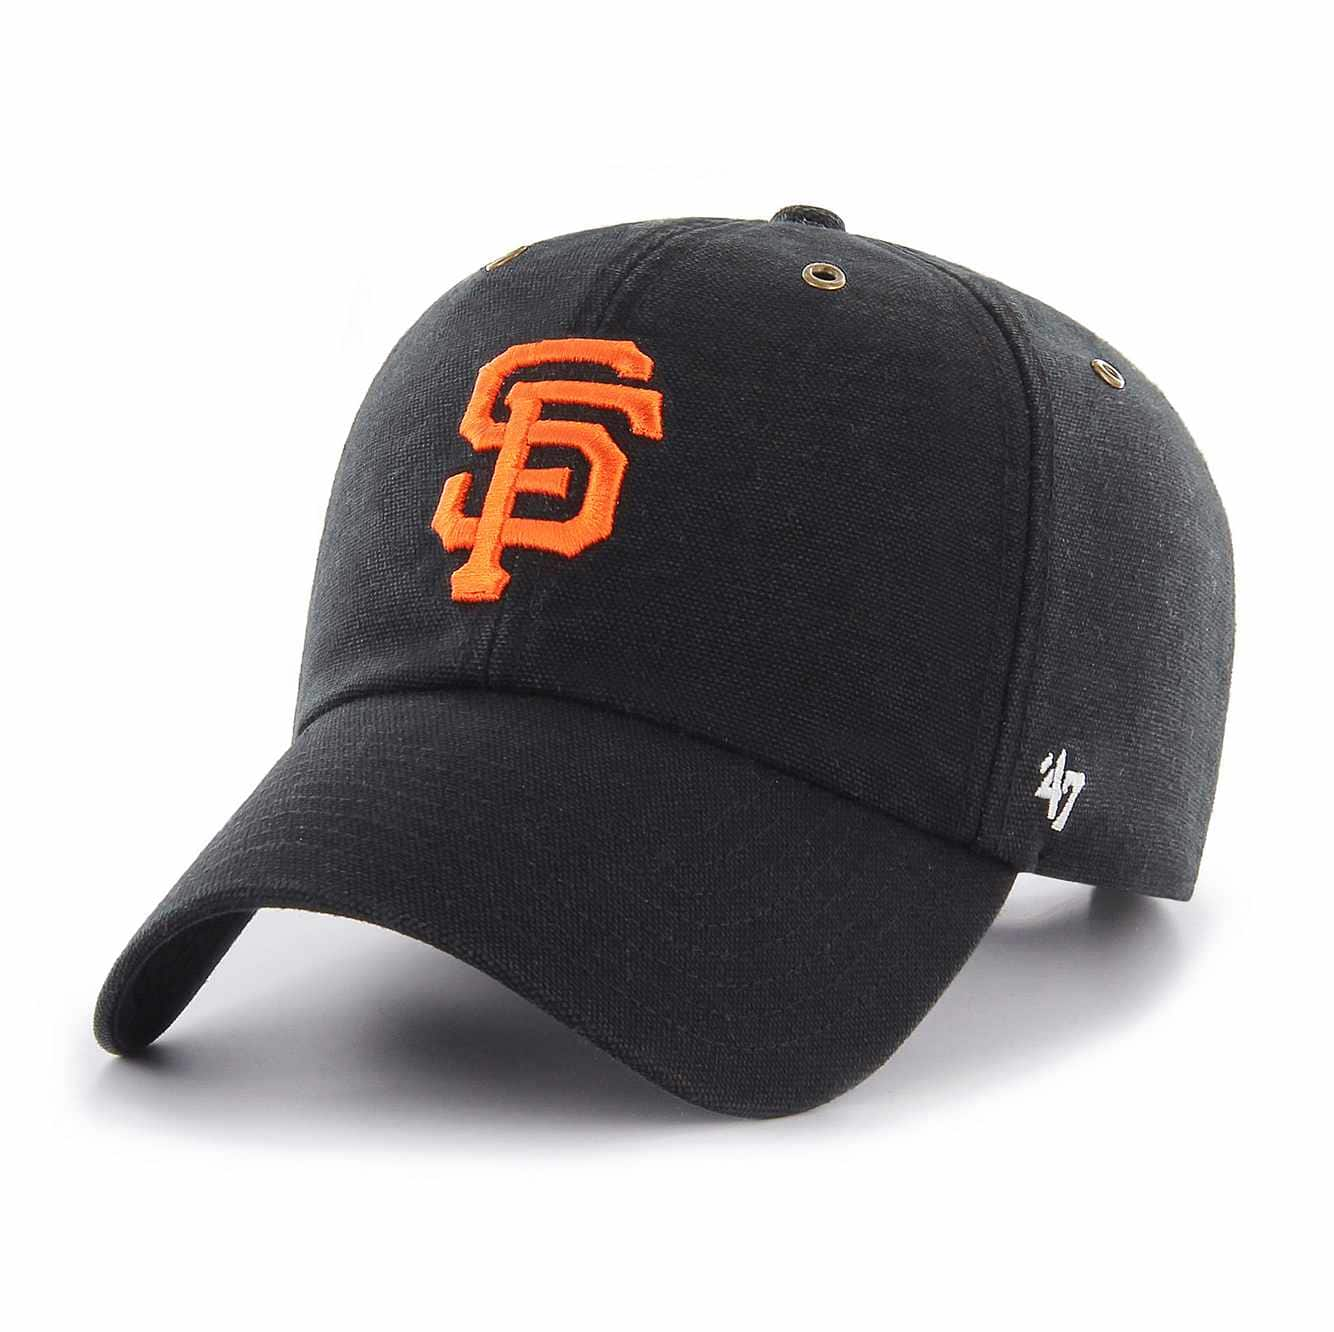 Picture of San Francisco Giants Carhartt x '47 Clean Up in Black